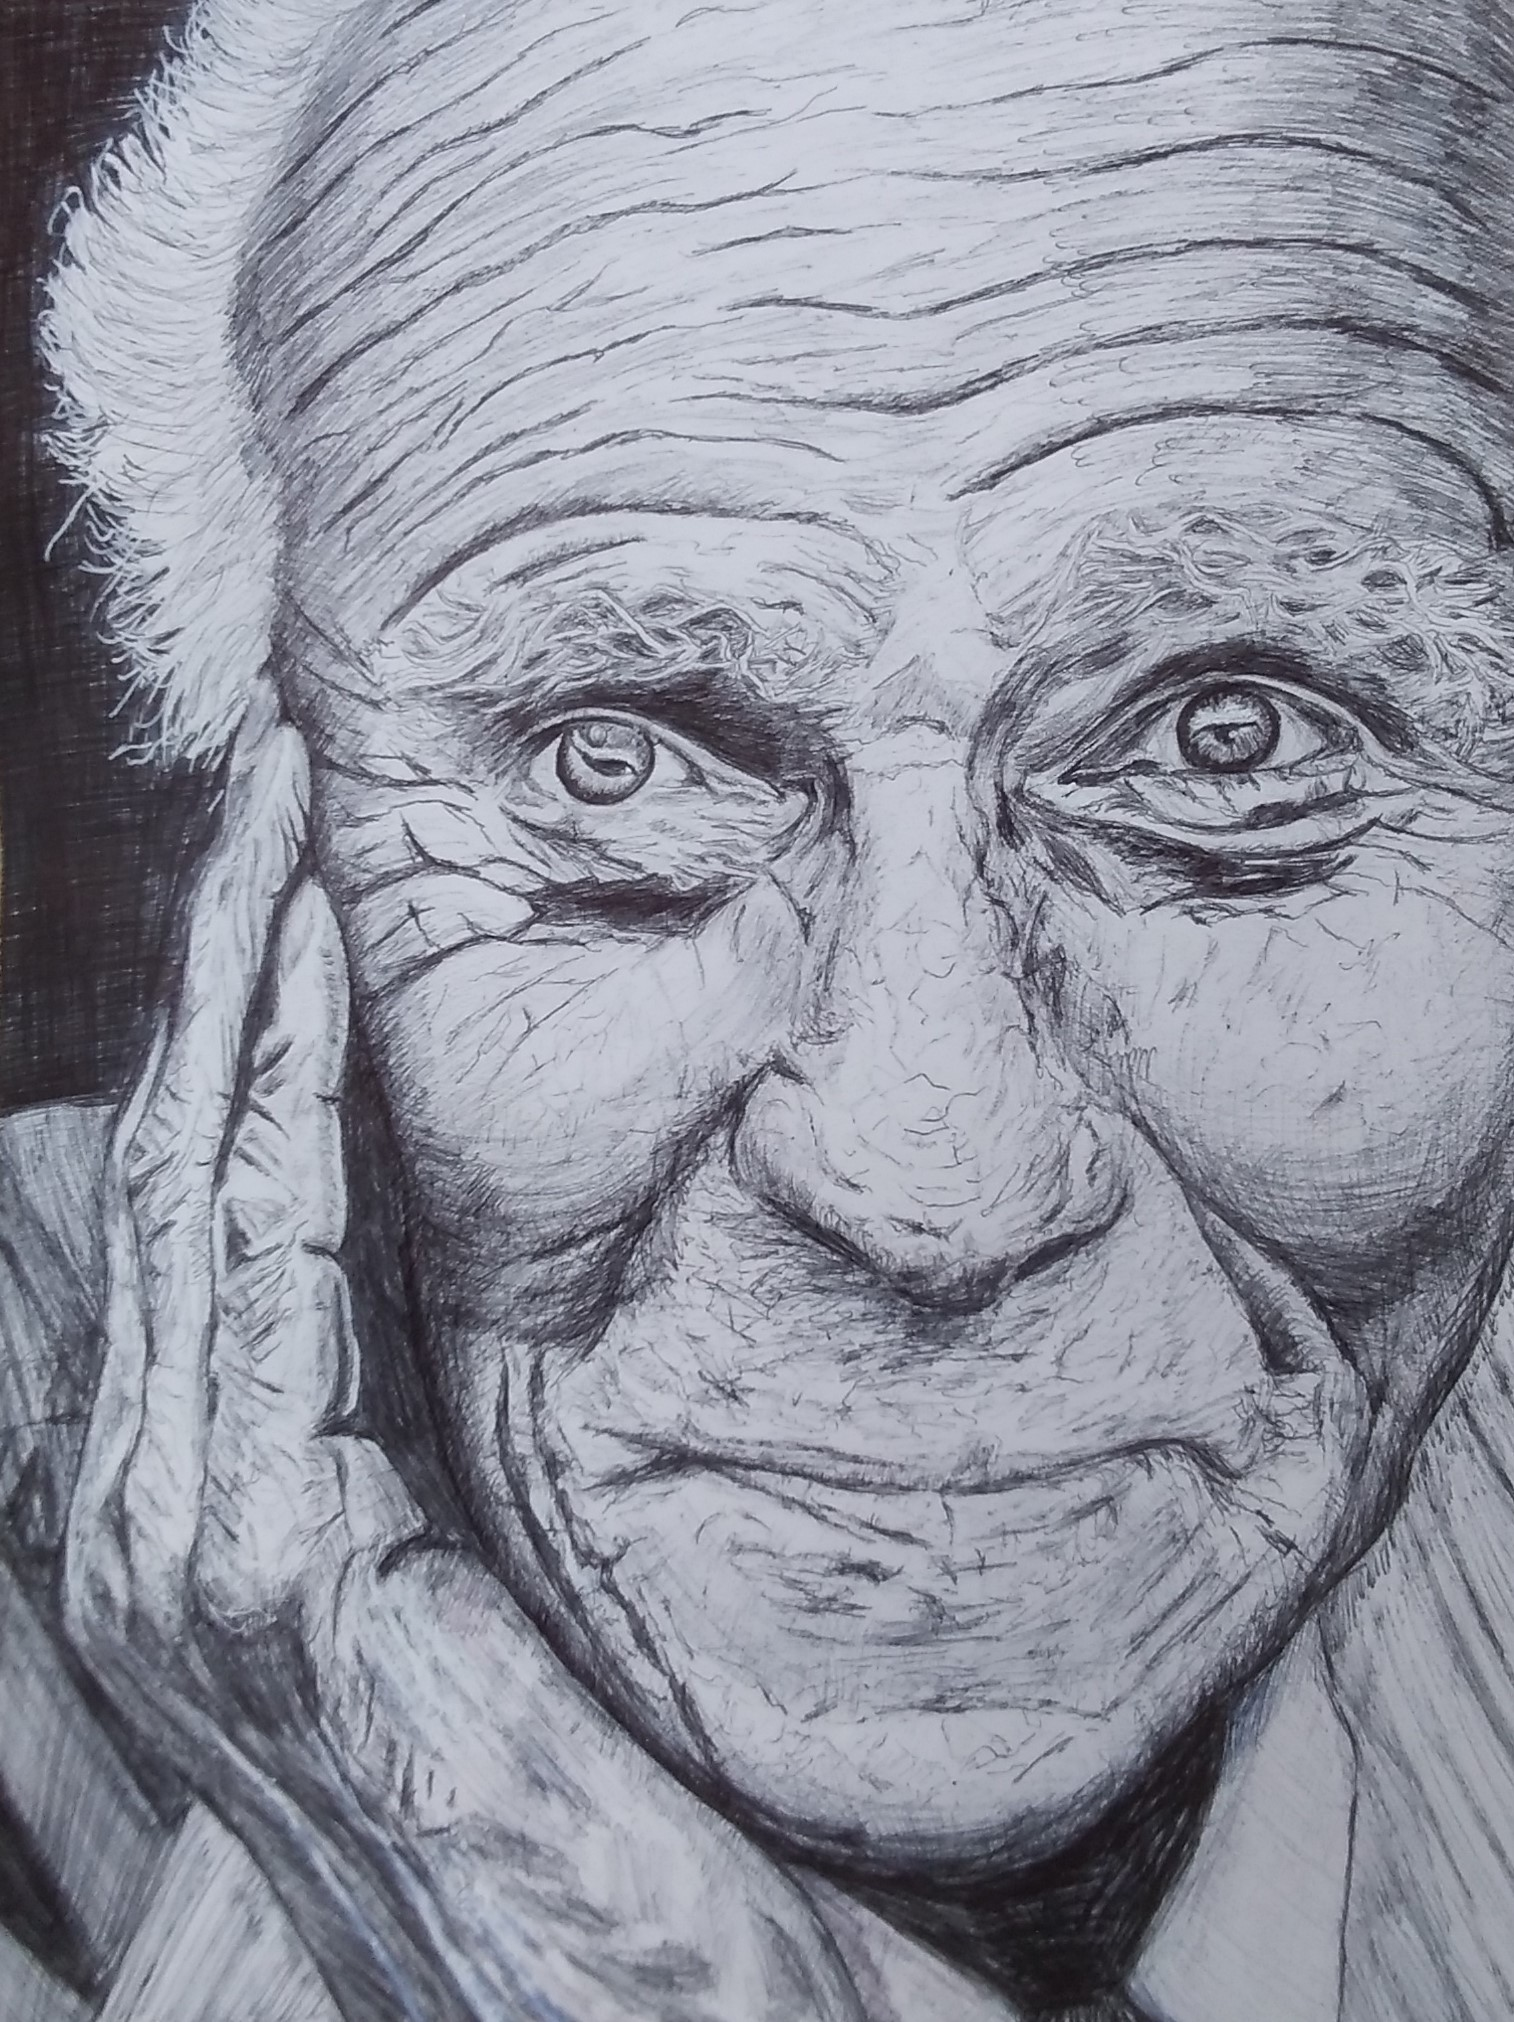 Learn how to draw portrait at online art course via zoom